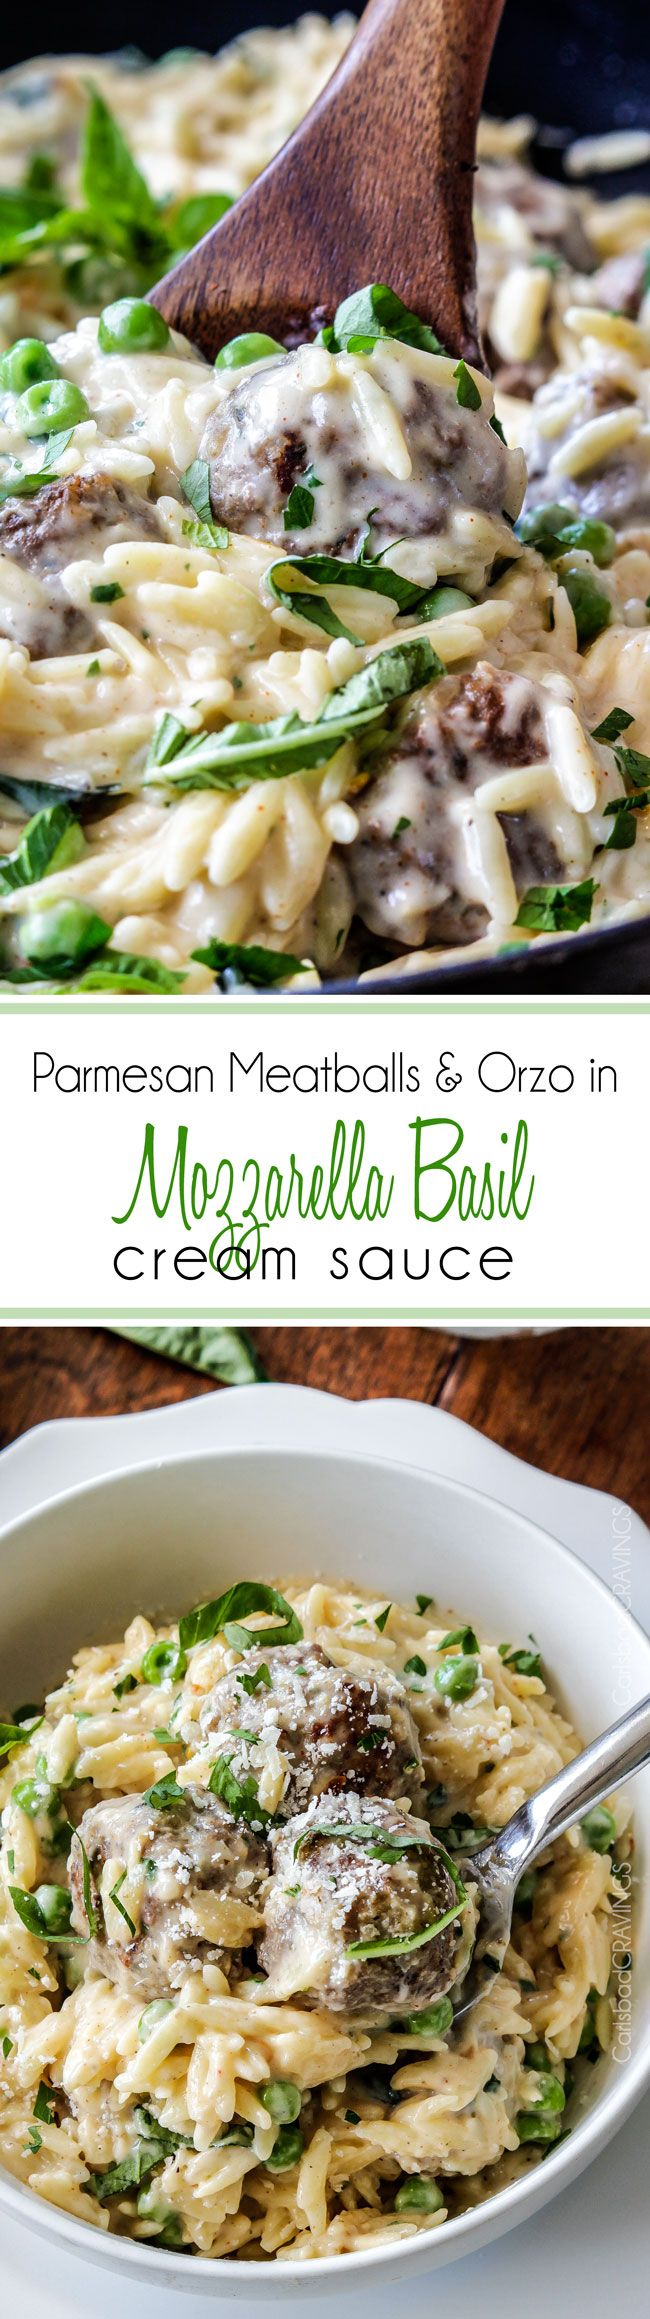 Parmesan Meatballs and Orzo in Mozzarella Basil Cream Sauce (lightened up) - crazy delicious creamy, cheesy sauce coating juicy meatballs and tender orzo. SO GOOD! I could eat this for days. via @carlsbadcraving